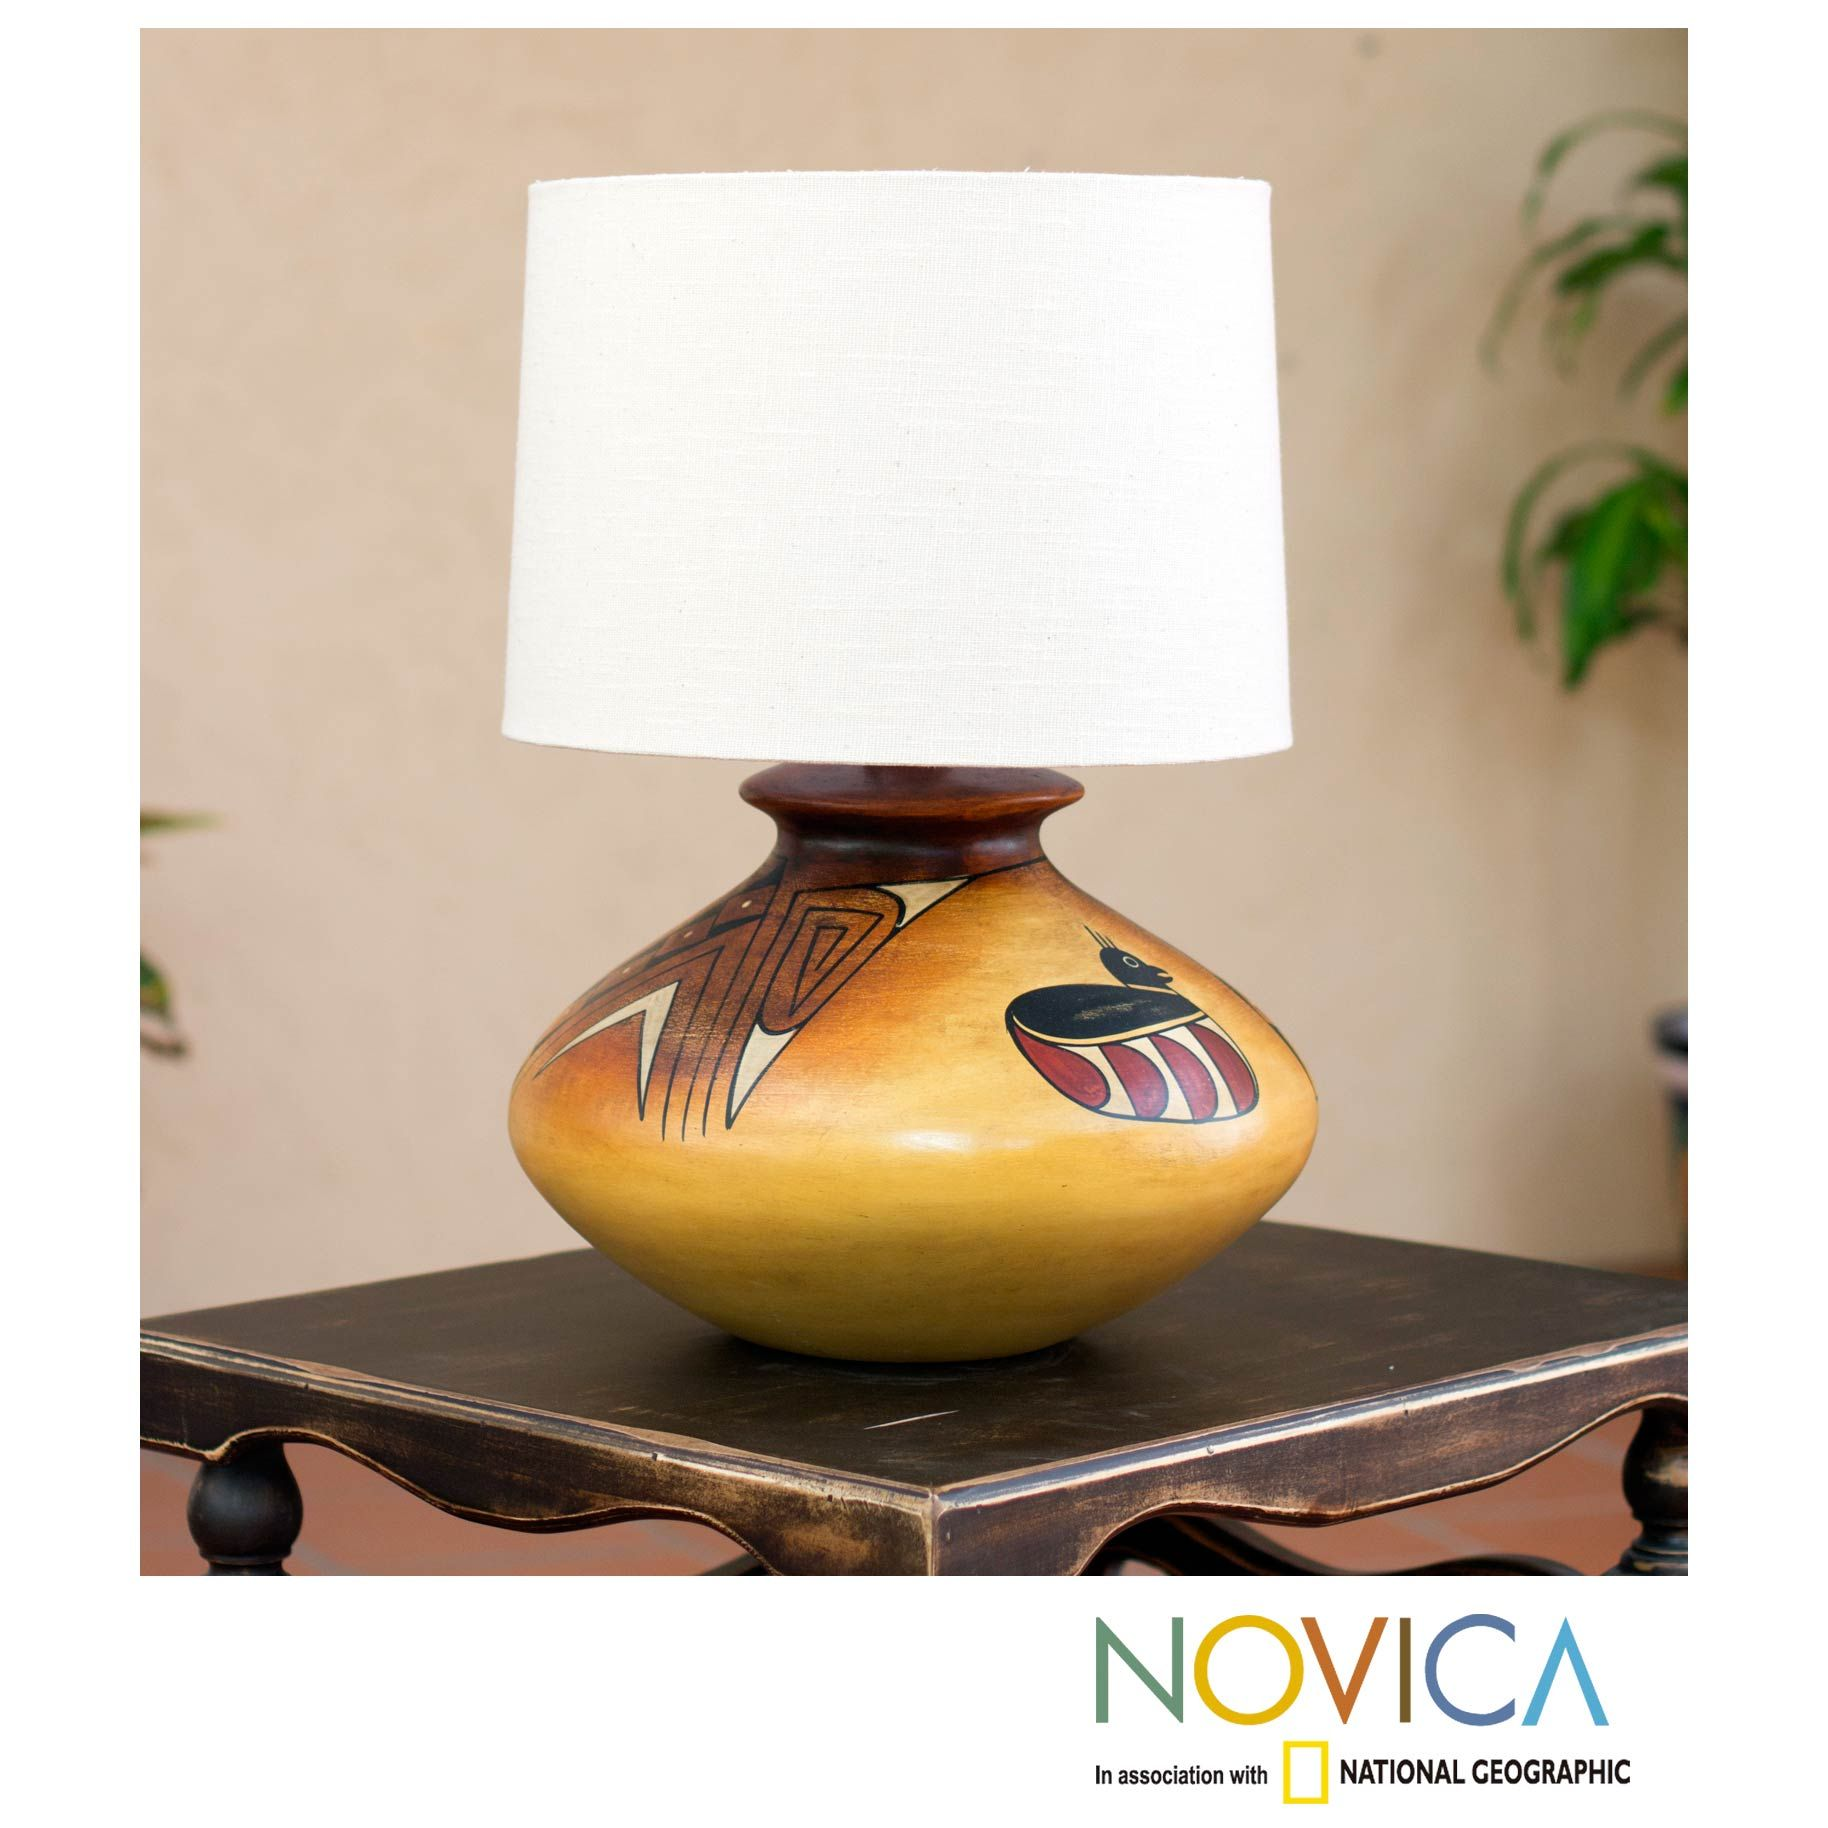 Brighten up your home decor with a lovely handmade lamp Lighting is decorated with arrows and birds that are painted by artist Raul FuenzalidaLampshade features a polystyrene protective cone covered in cotton canvas